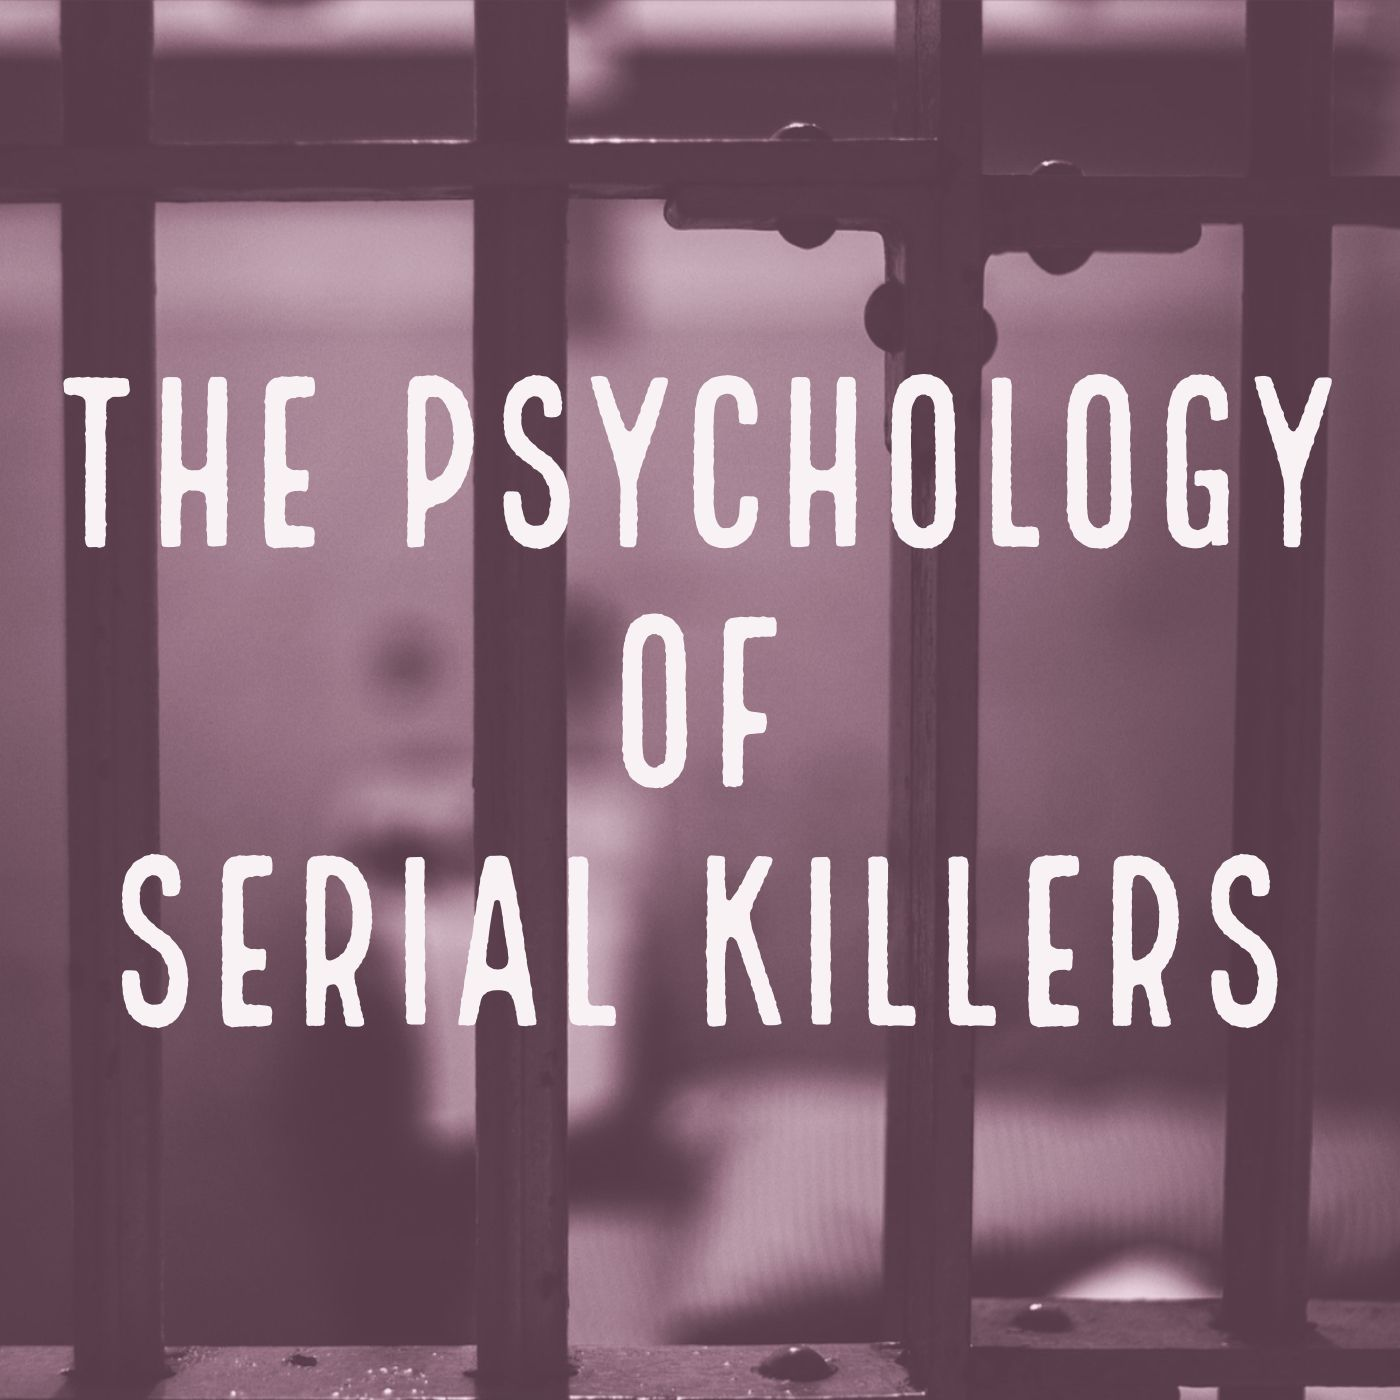 The Psychology of Serial Killers (2019 Rerun)